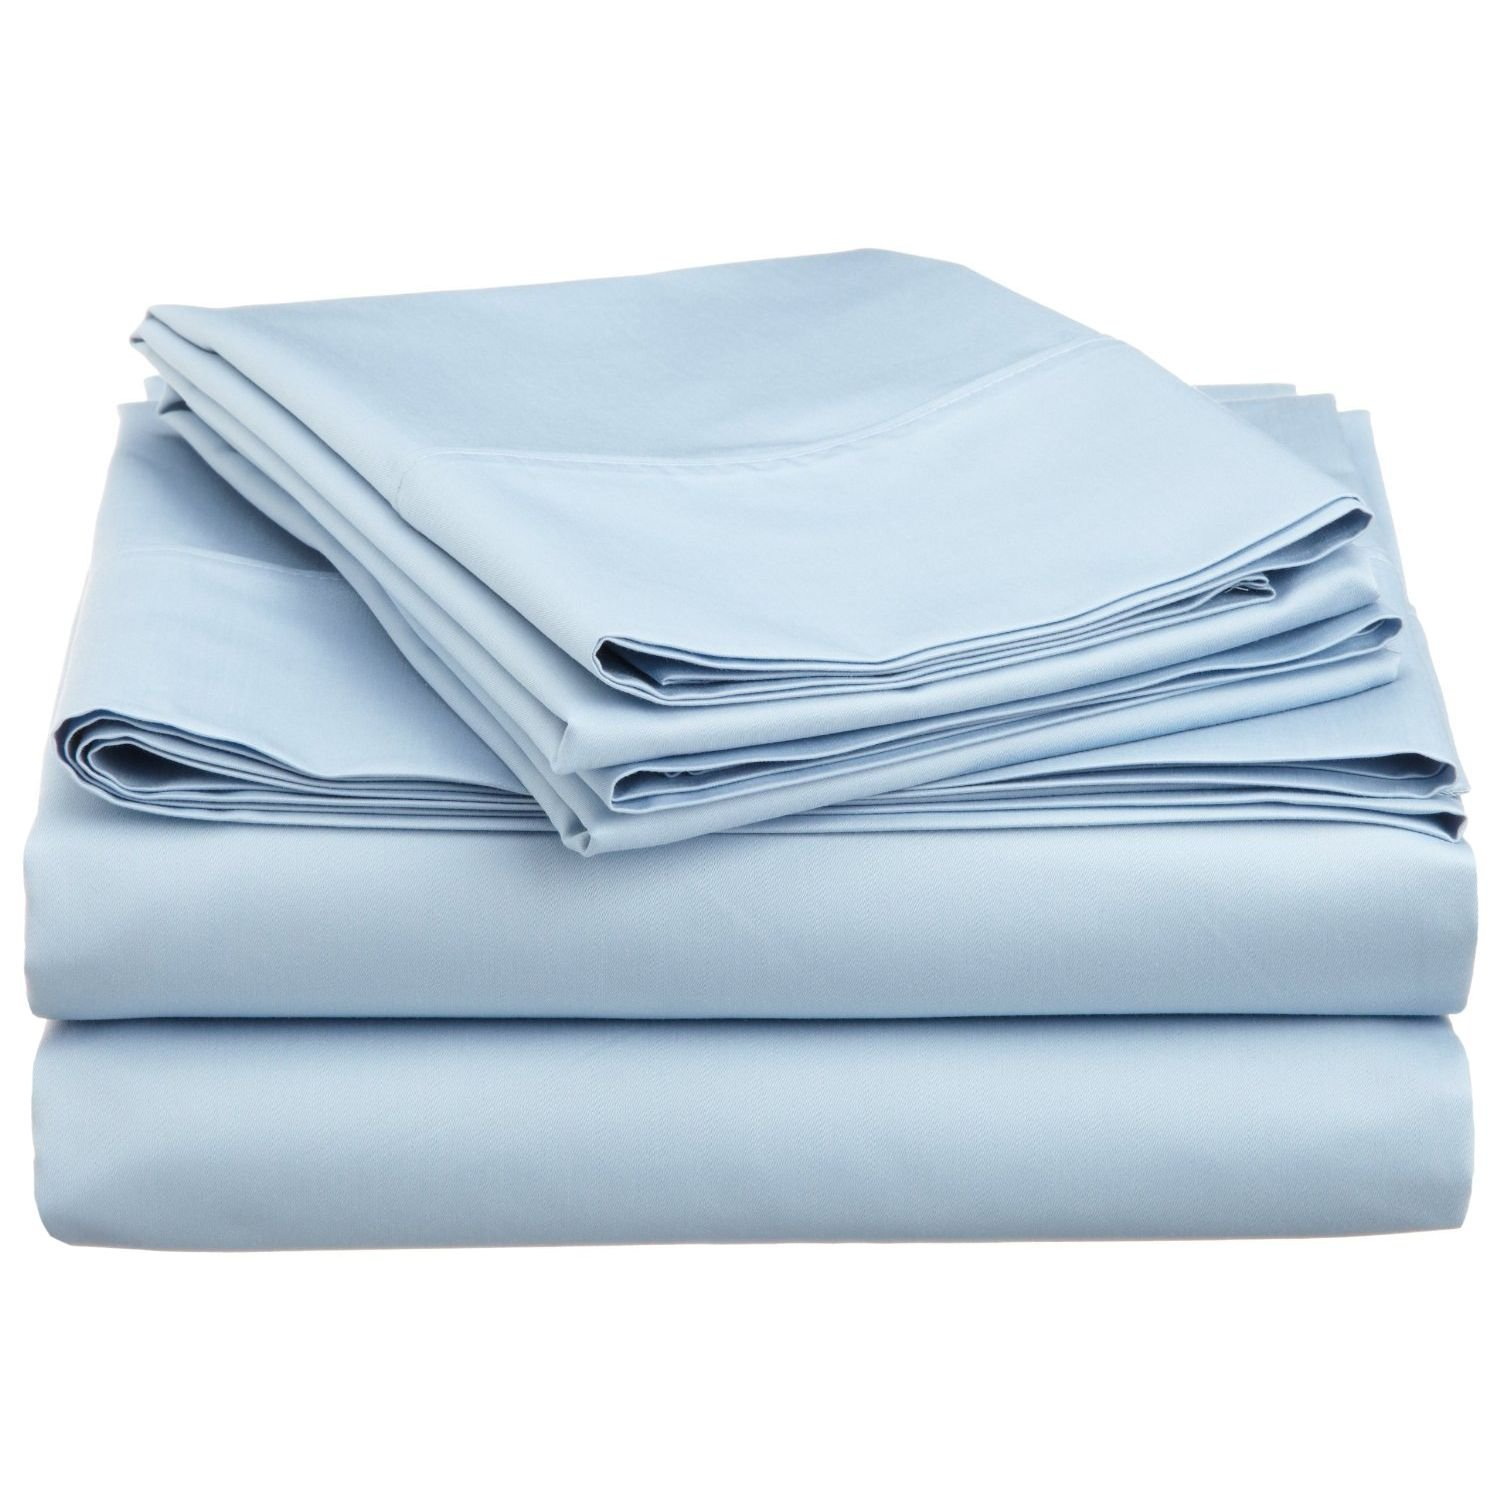 1-PC Flat Sheet/Top Sheet Queen XL (Extra Long) 100% Egyptian Cototn 600-TC Solid (Light Blue Queen XL)